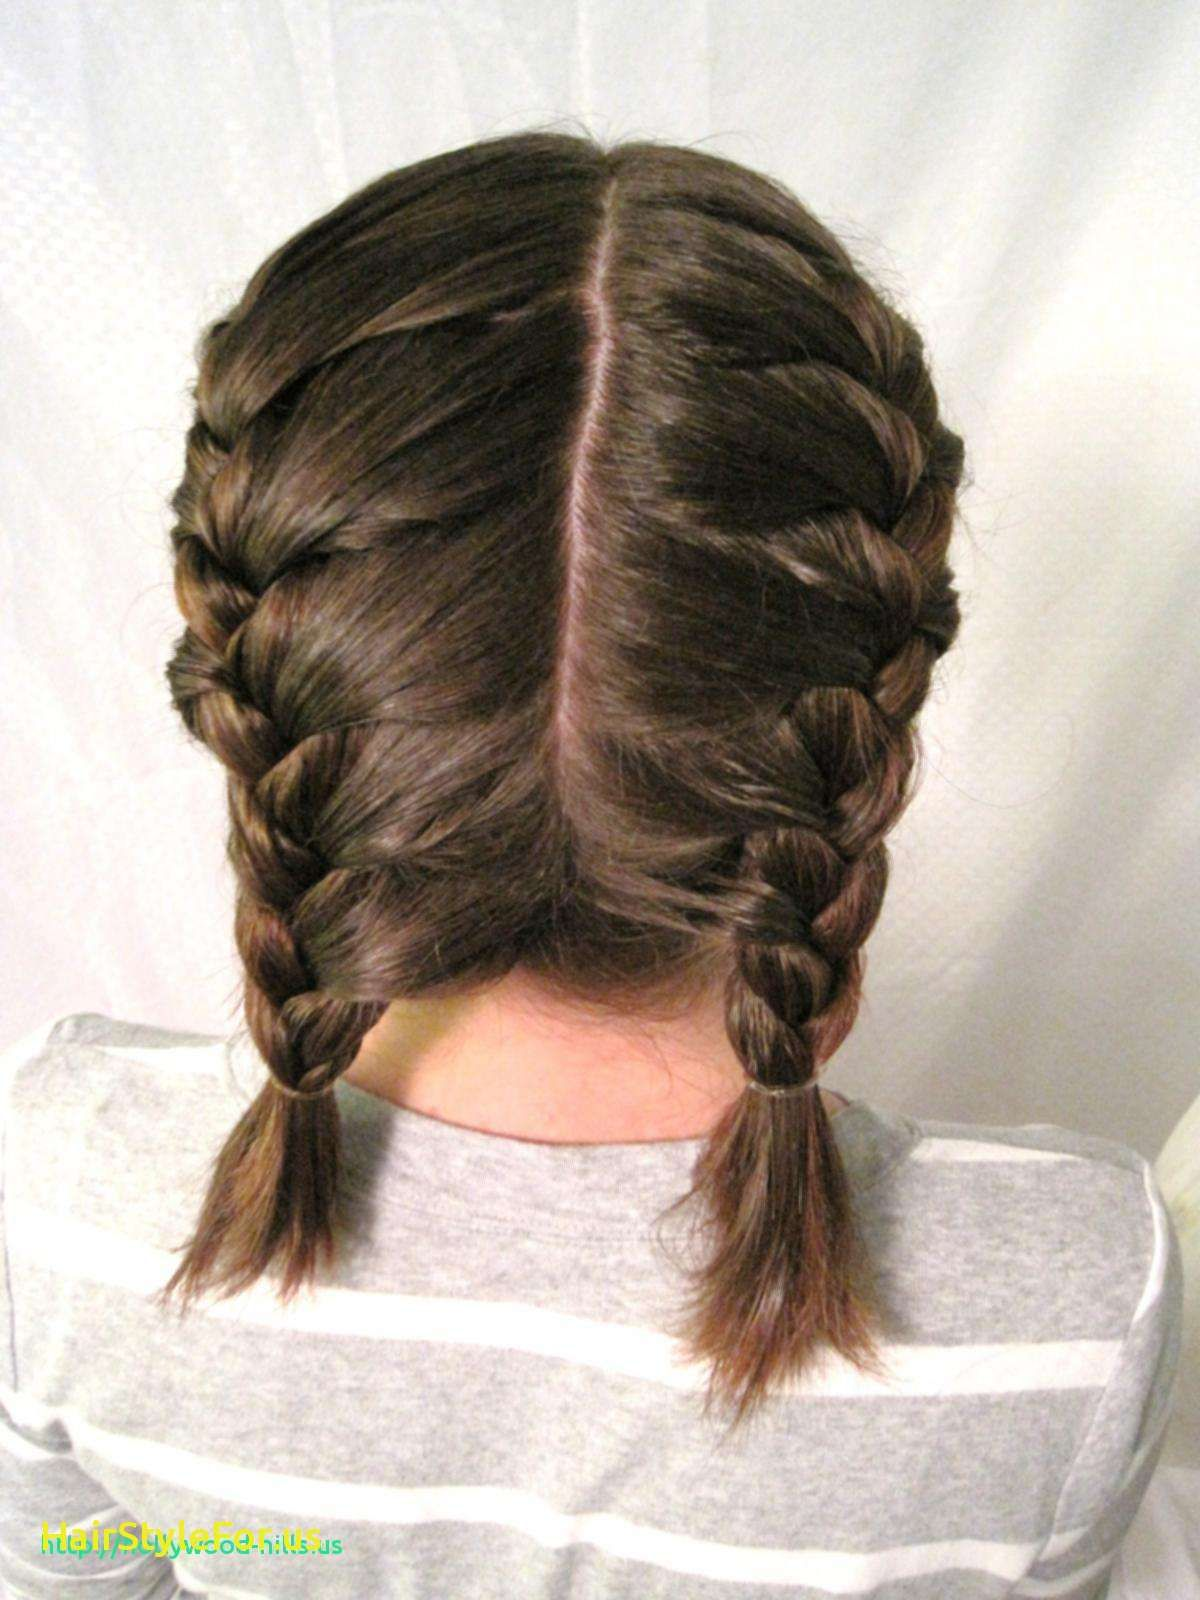 Top 15 How To Braid Short Hair Step By Step Aaron Gardner Top 15 How To Braid Short Hair Step By St Braids For Short Hair Hair Styles French Braid Short Hair